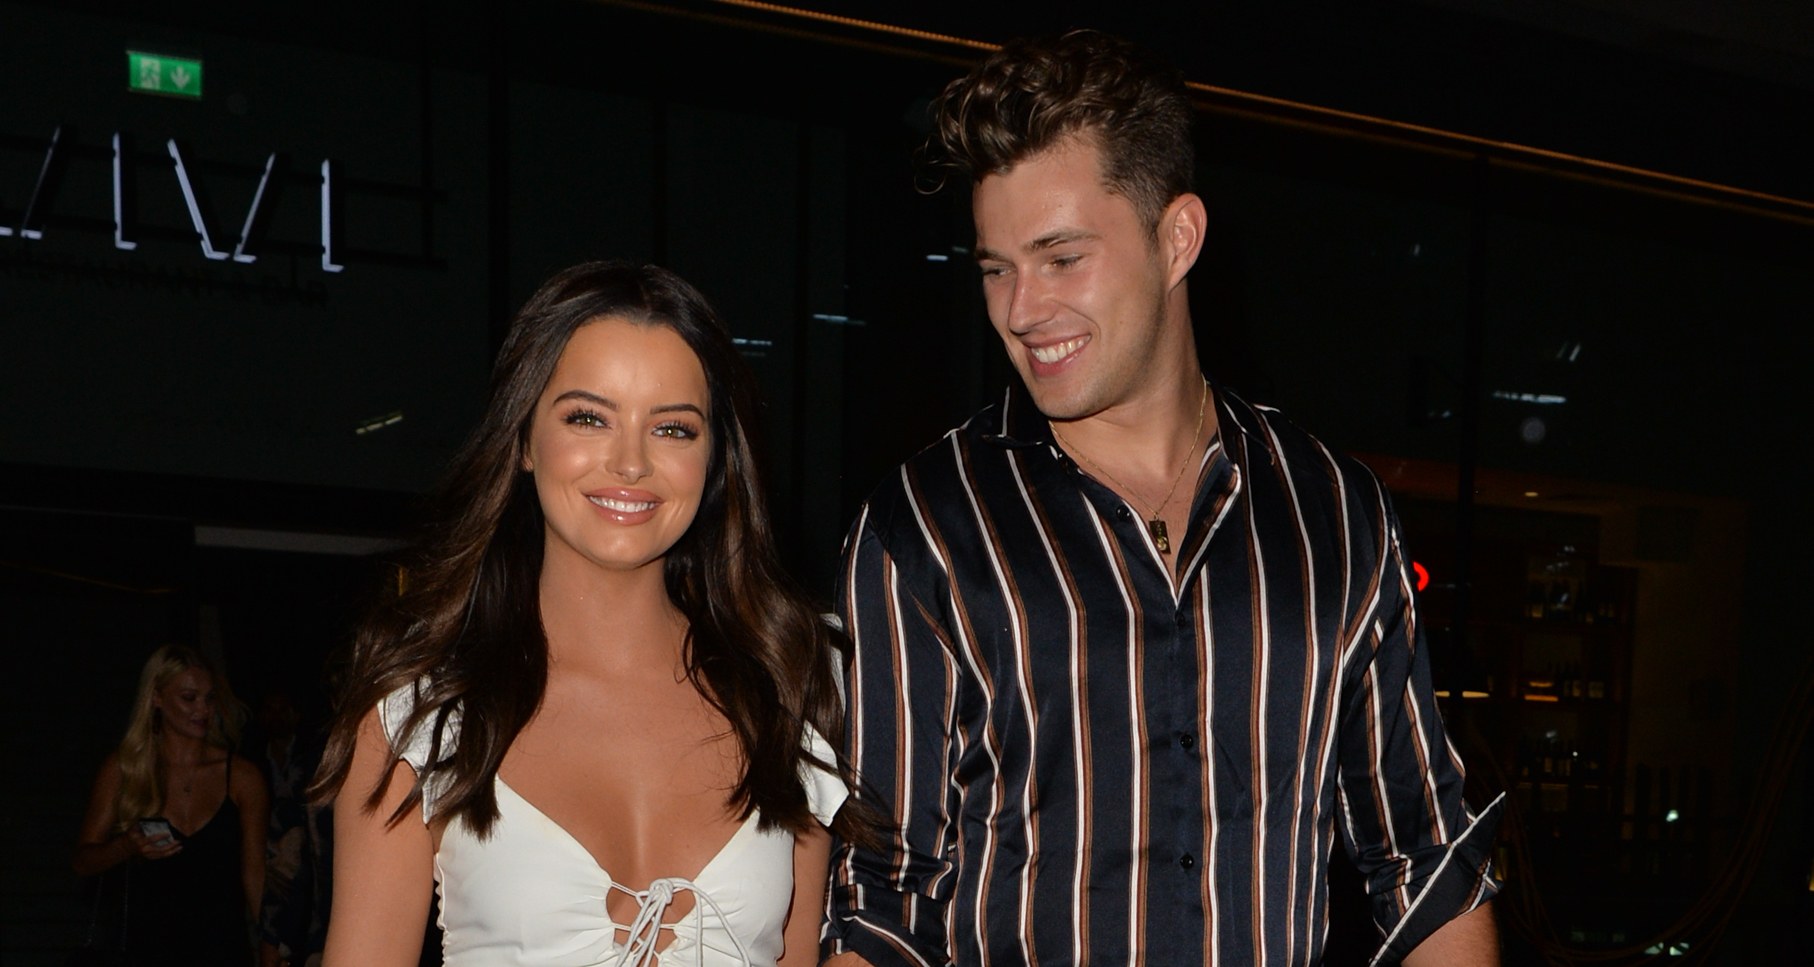 Love Island's Maura Higgins and Curtis Pritchard put split rumours behind them at Strictly launch